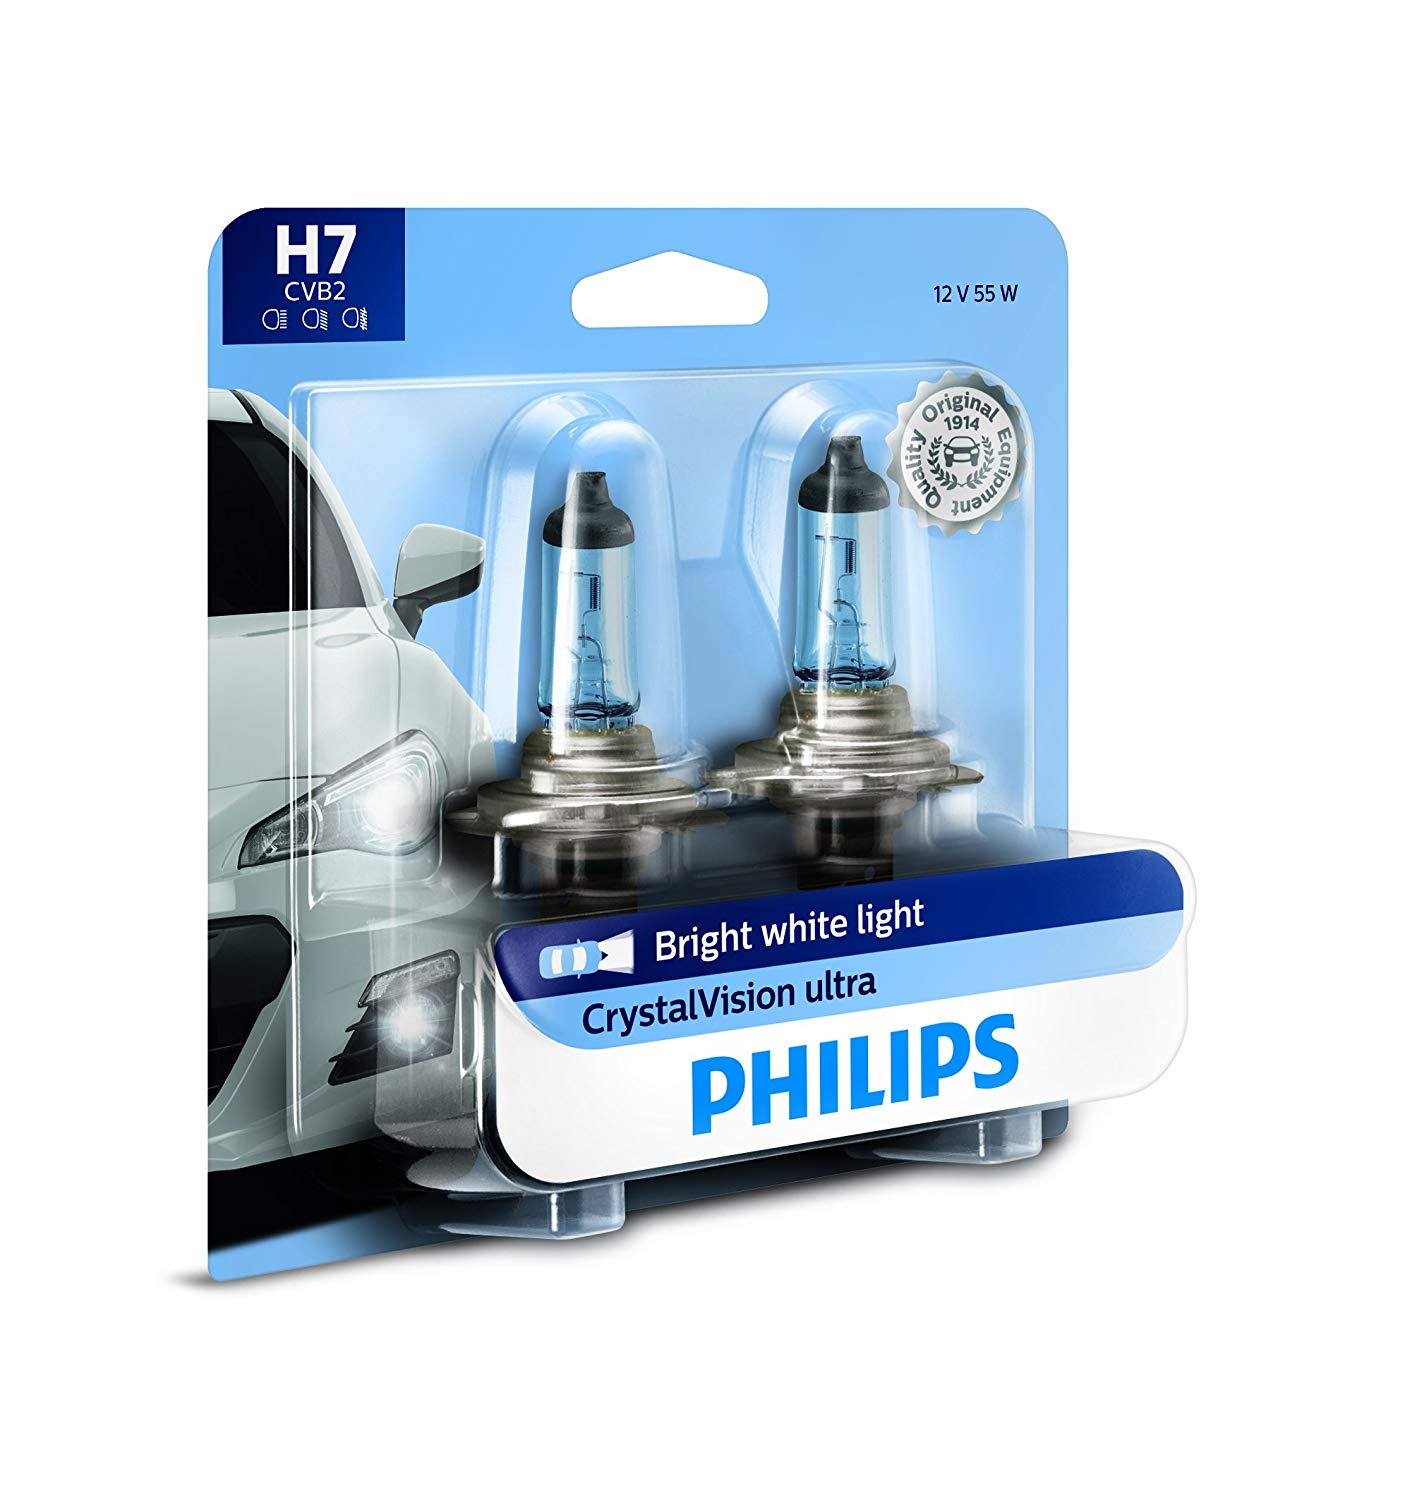 Philips H7 CrystalVision Ultra Upgrade Bright White Bulb